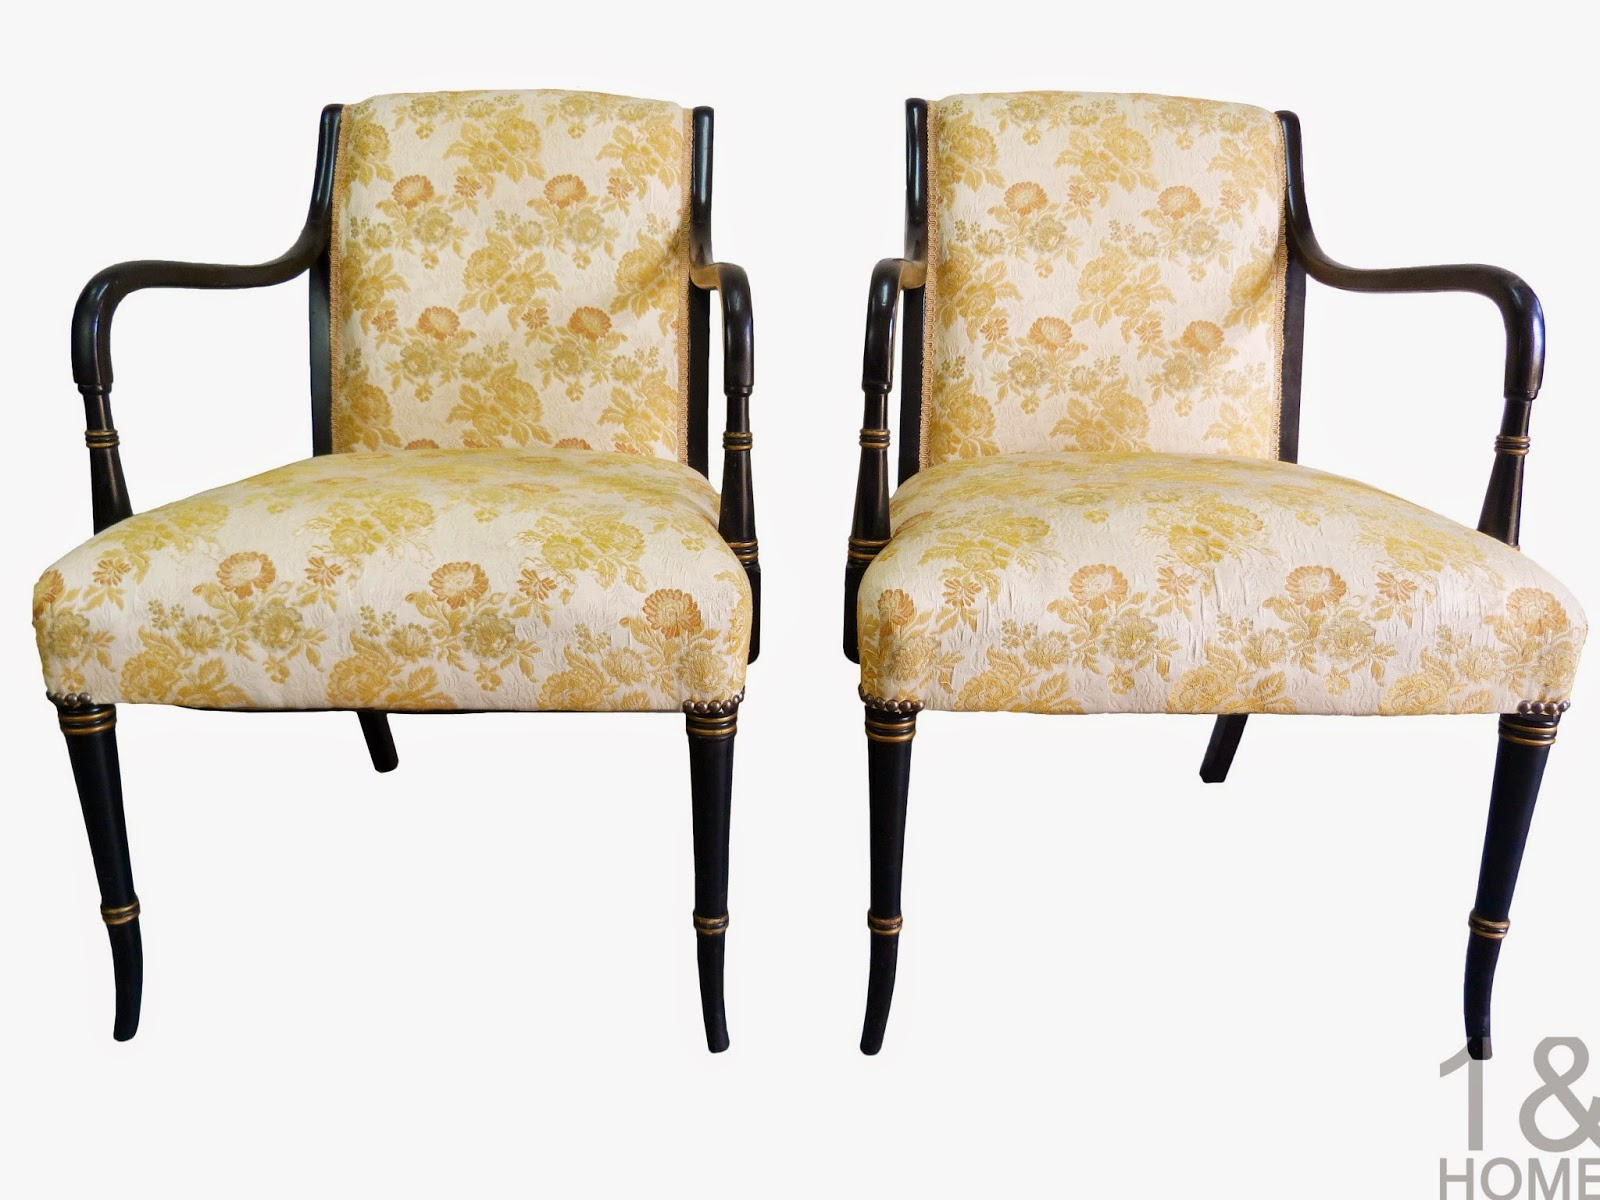 Hollywood Regency-Style Gilt Black Armchairs lacquer ebony